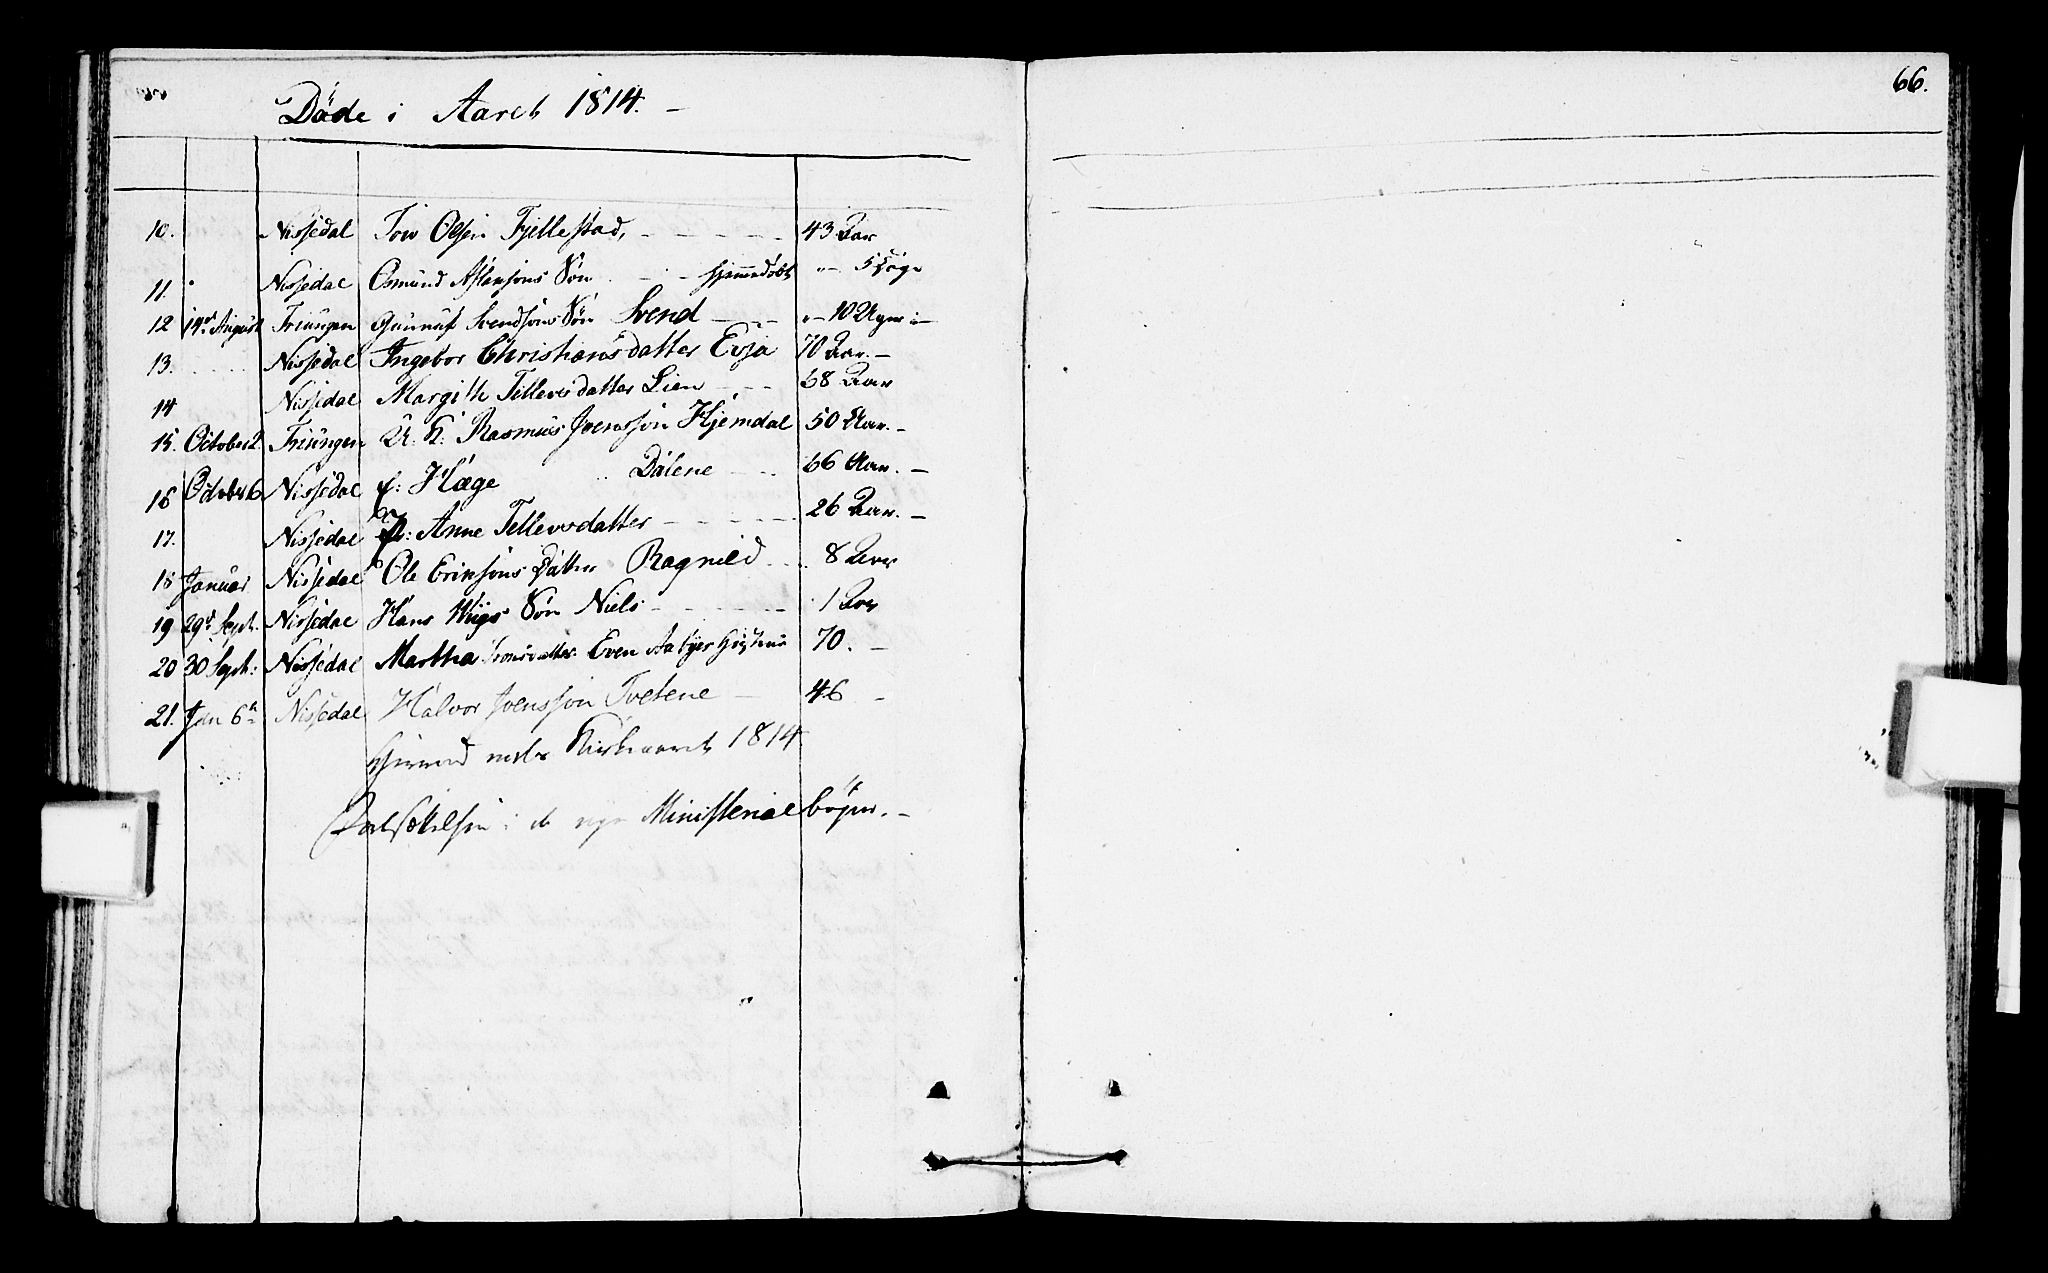 SAKO, Nissedal kirkebøker, F/Fa/L0001: Parish register (official) no. I 1, 1811-1814, p. 66